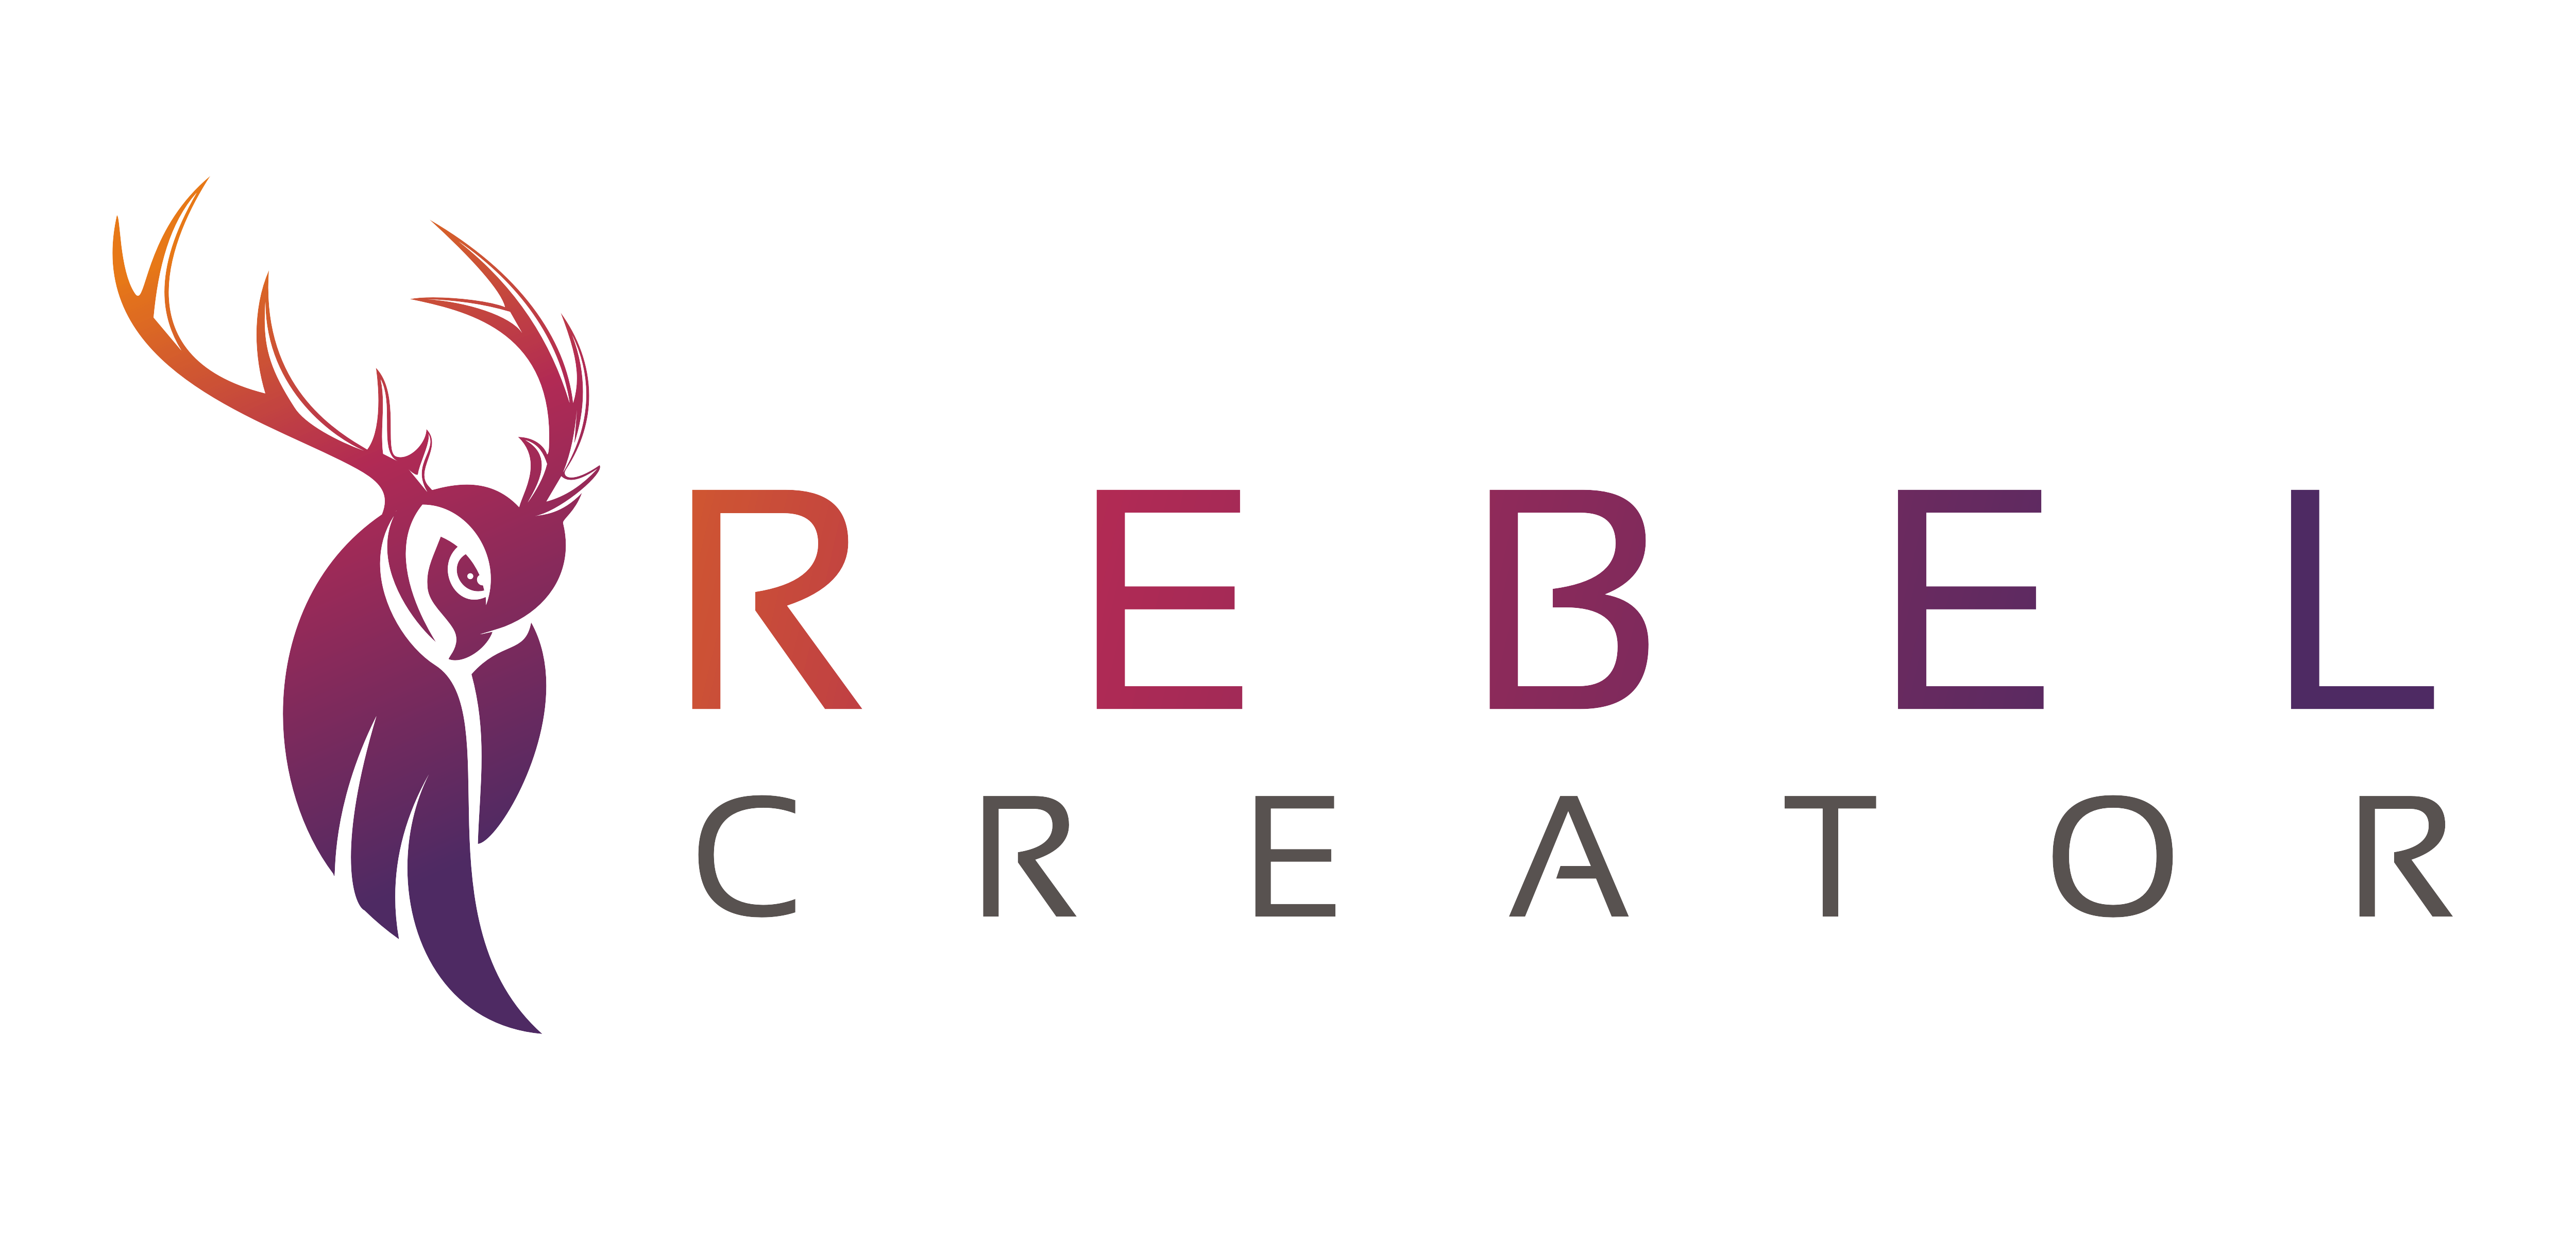 Design a logo for a publisher/podcast that does deep dives into creativity.